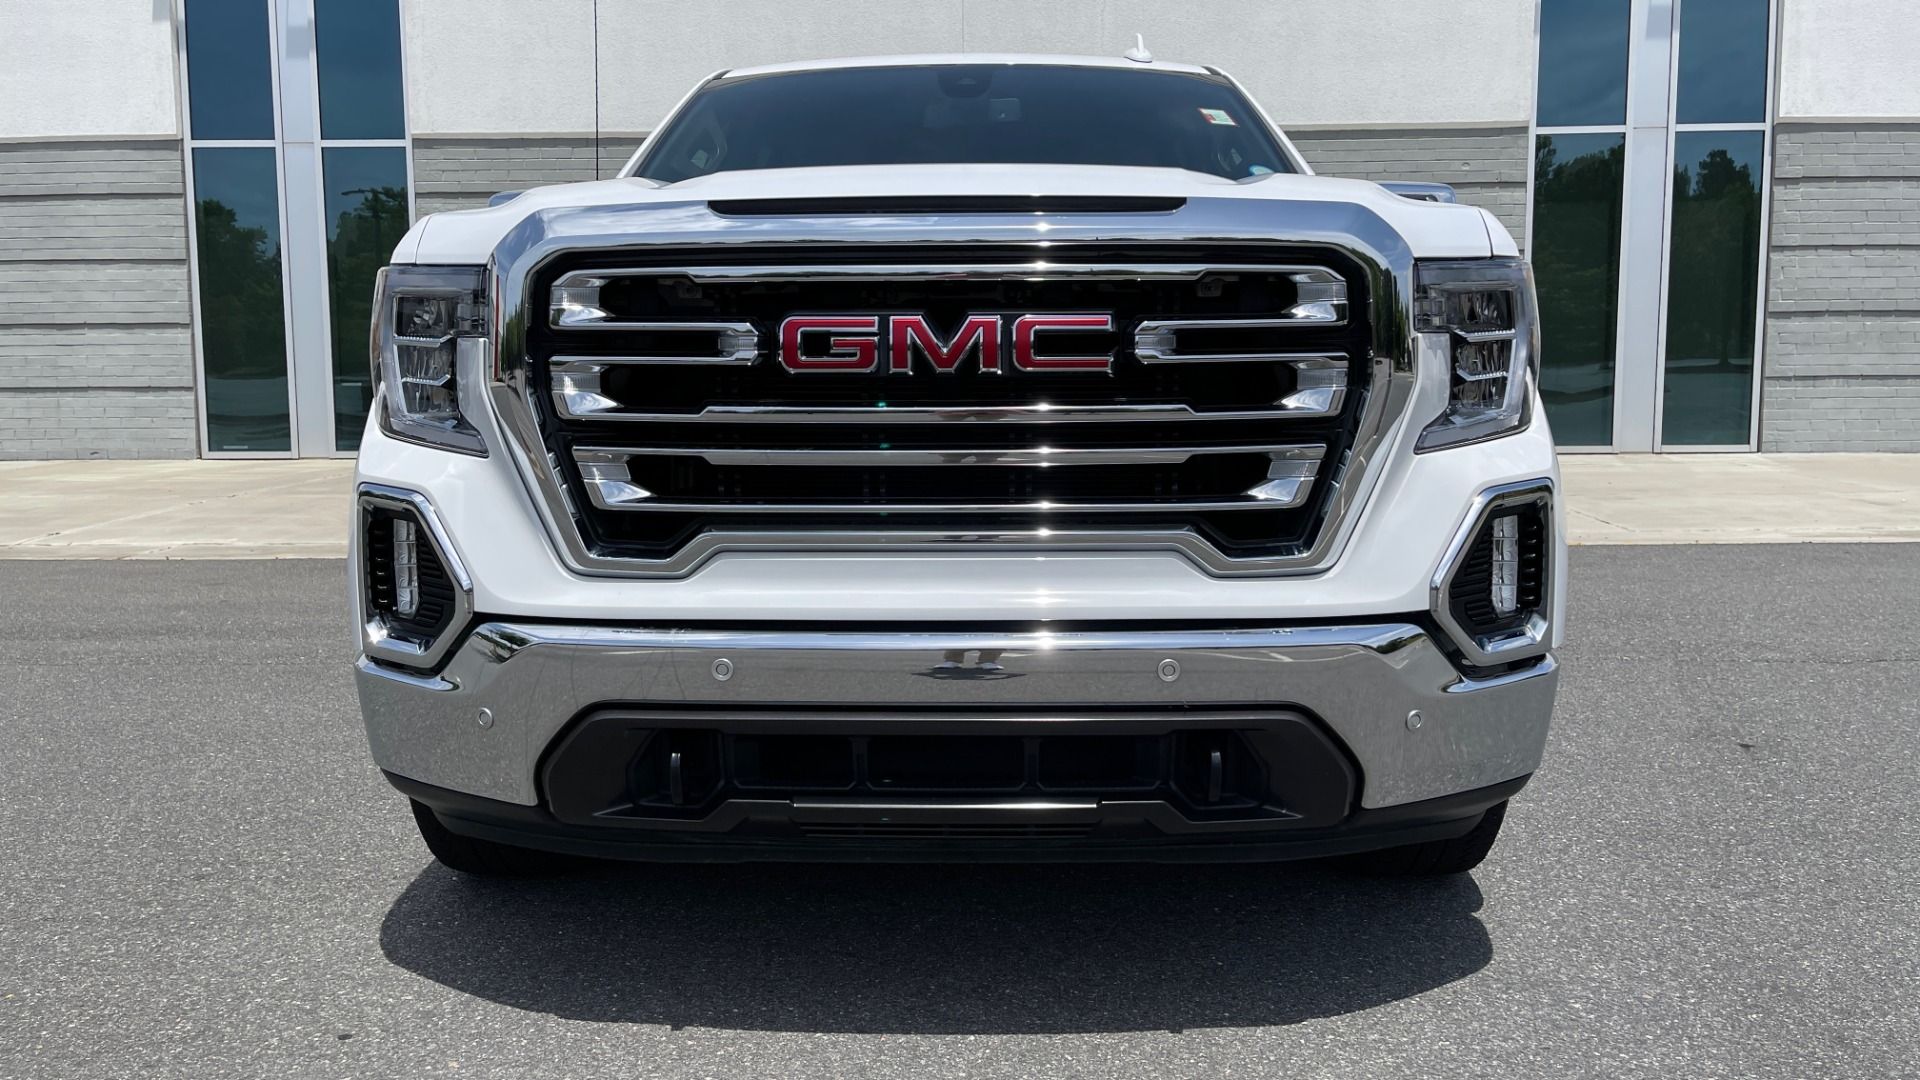 Used 2019 GMC SIERRA 1500 SLT 4X4 CREWCAB / 5.3L V8 / 8-SPD AUTO / NAV / BOSE / REARVIEW for sale $49,999 at Formula Imports in Charlotte NC 28227 13